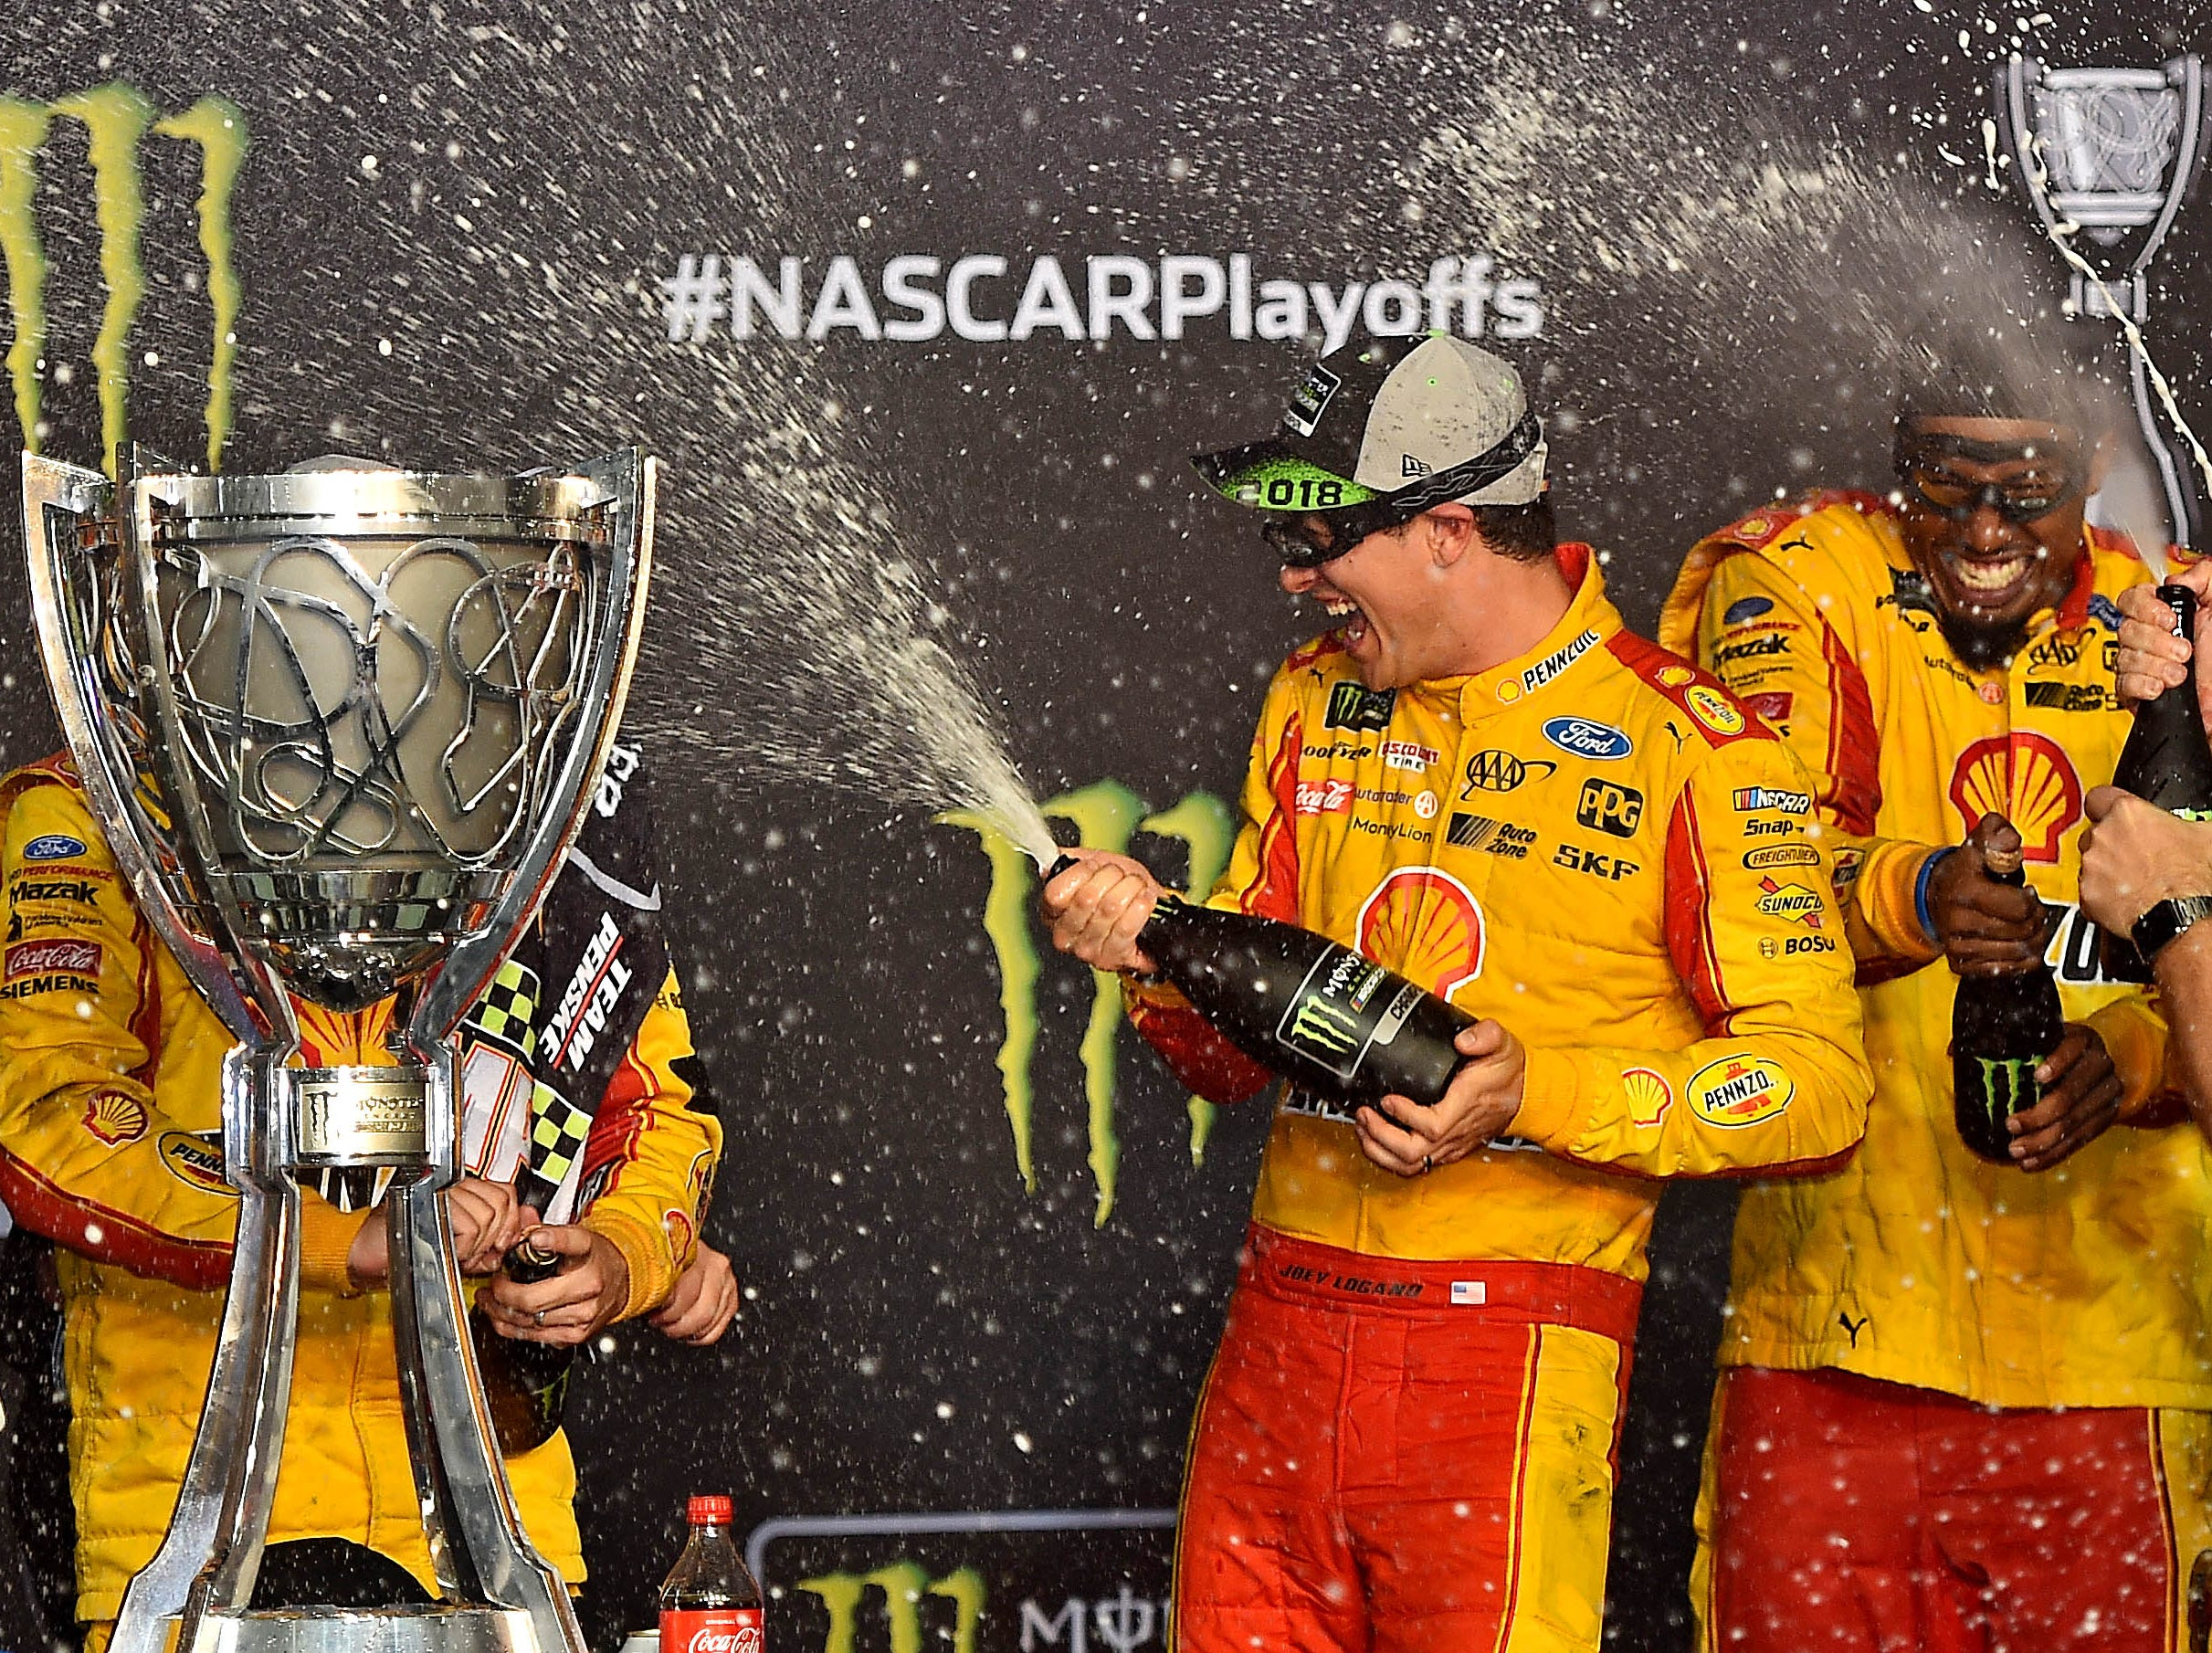 Joey Logano celebrates winning the NASCAR Cup Series championship at Homestead-Miami Speedway.